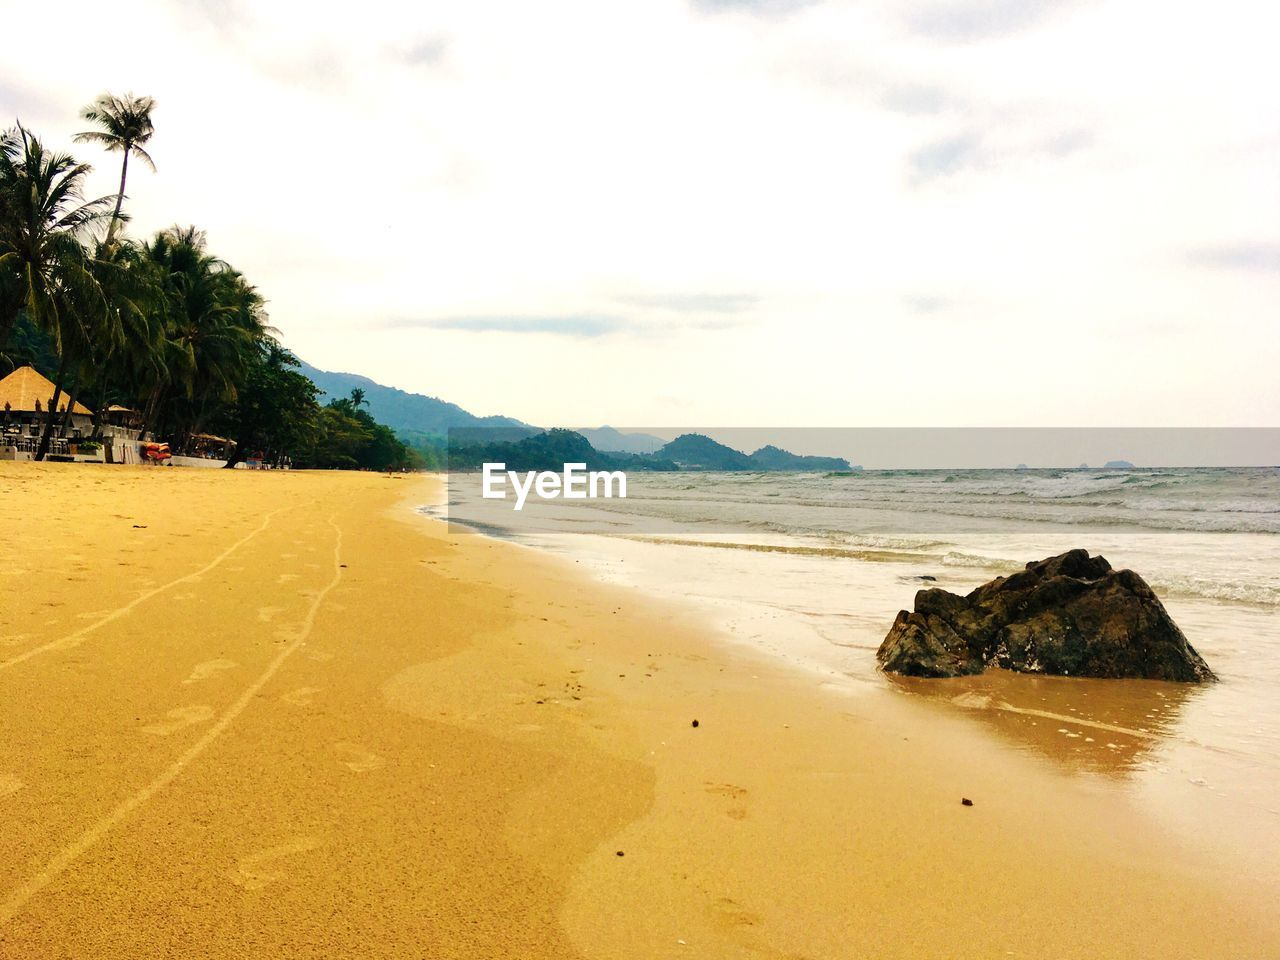 sea, water, sky, beach, land, tranquility, scenics - nature, tranquil scene, beauty in nature, tree, nature, rock, plant, sand, day, cloud - sky, no people, tropical climate, rock - object, outdoors, bay